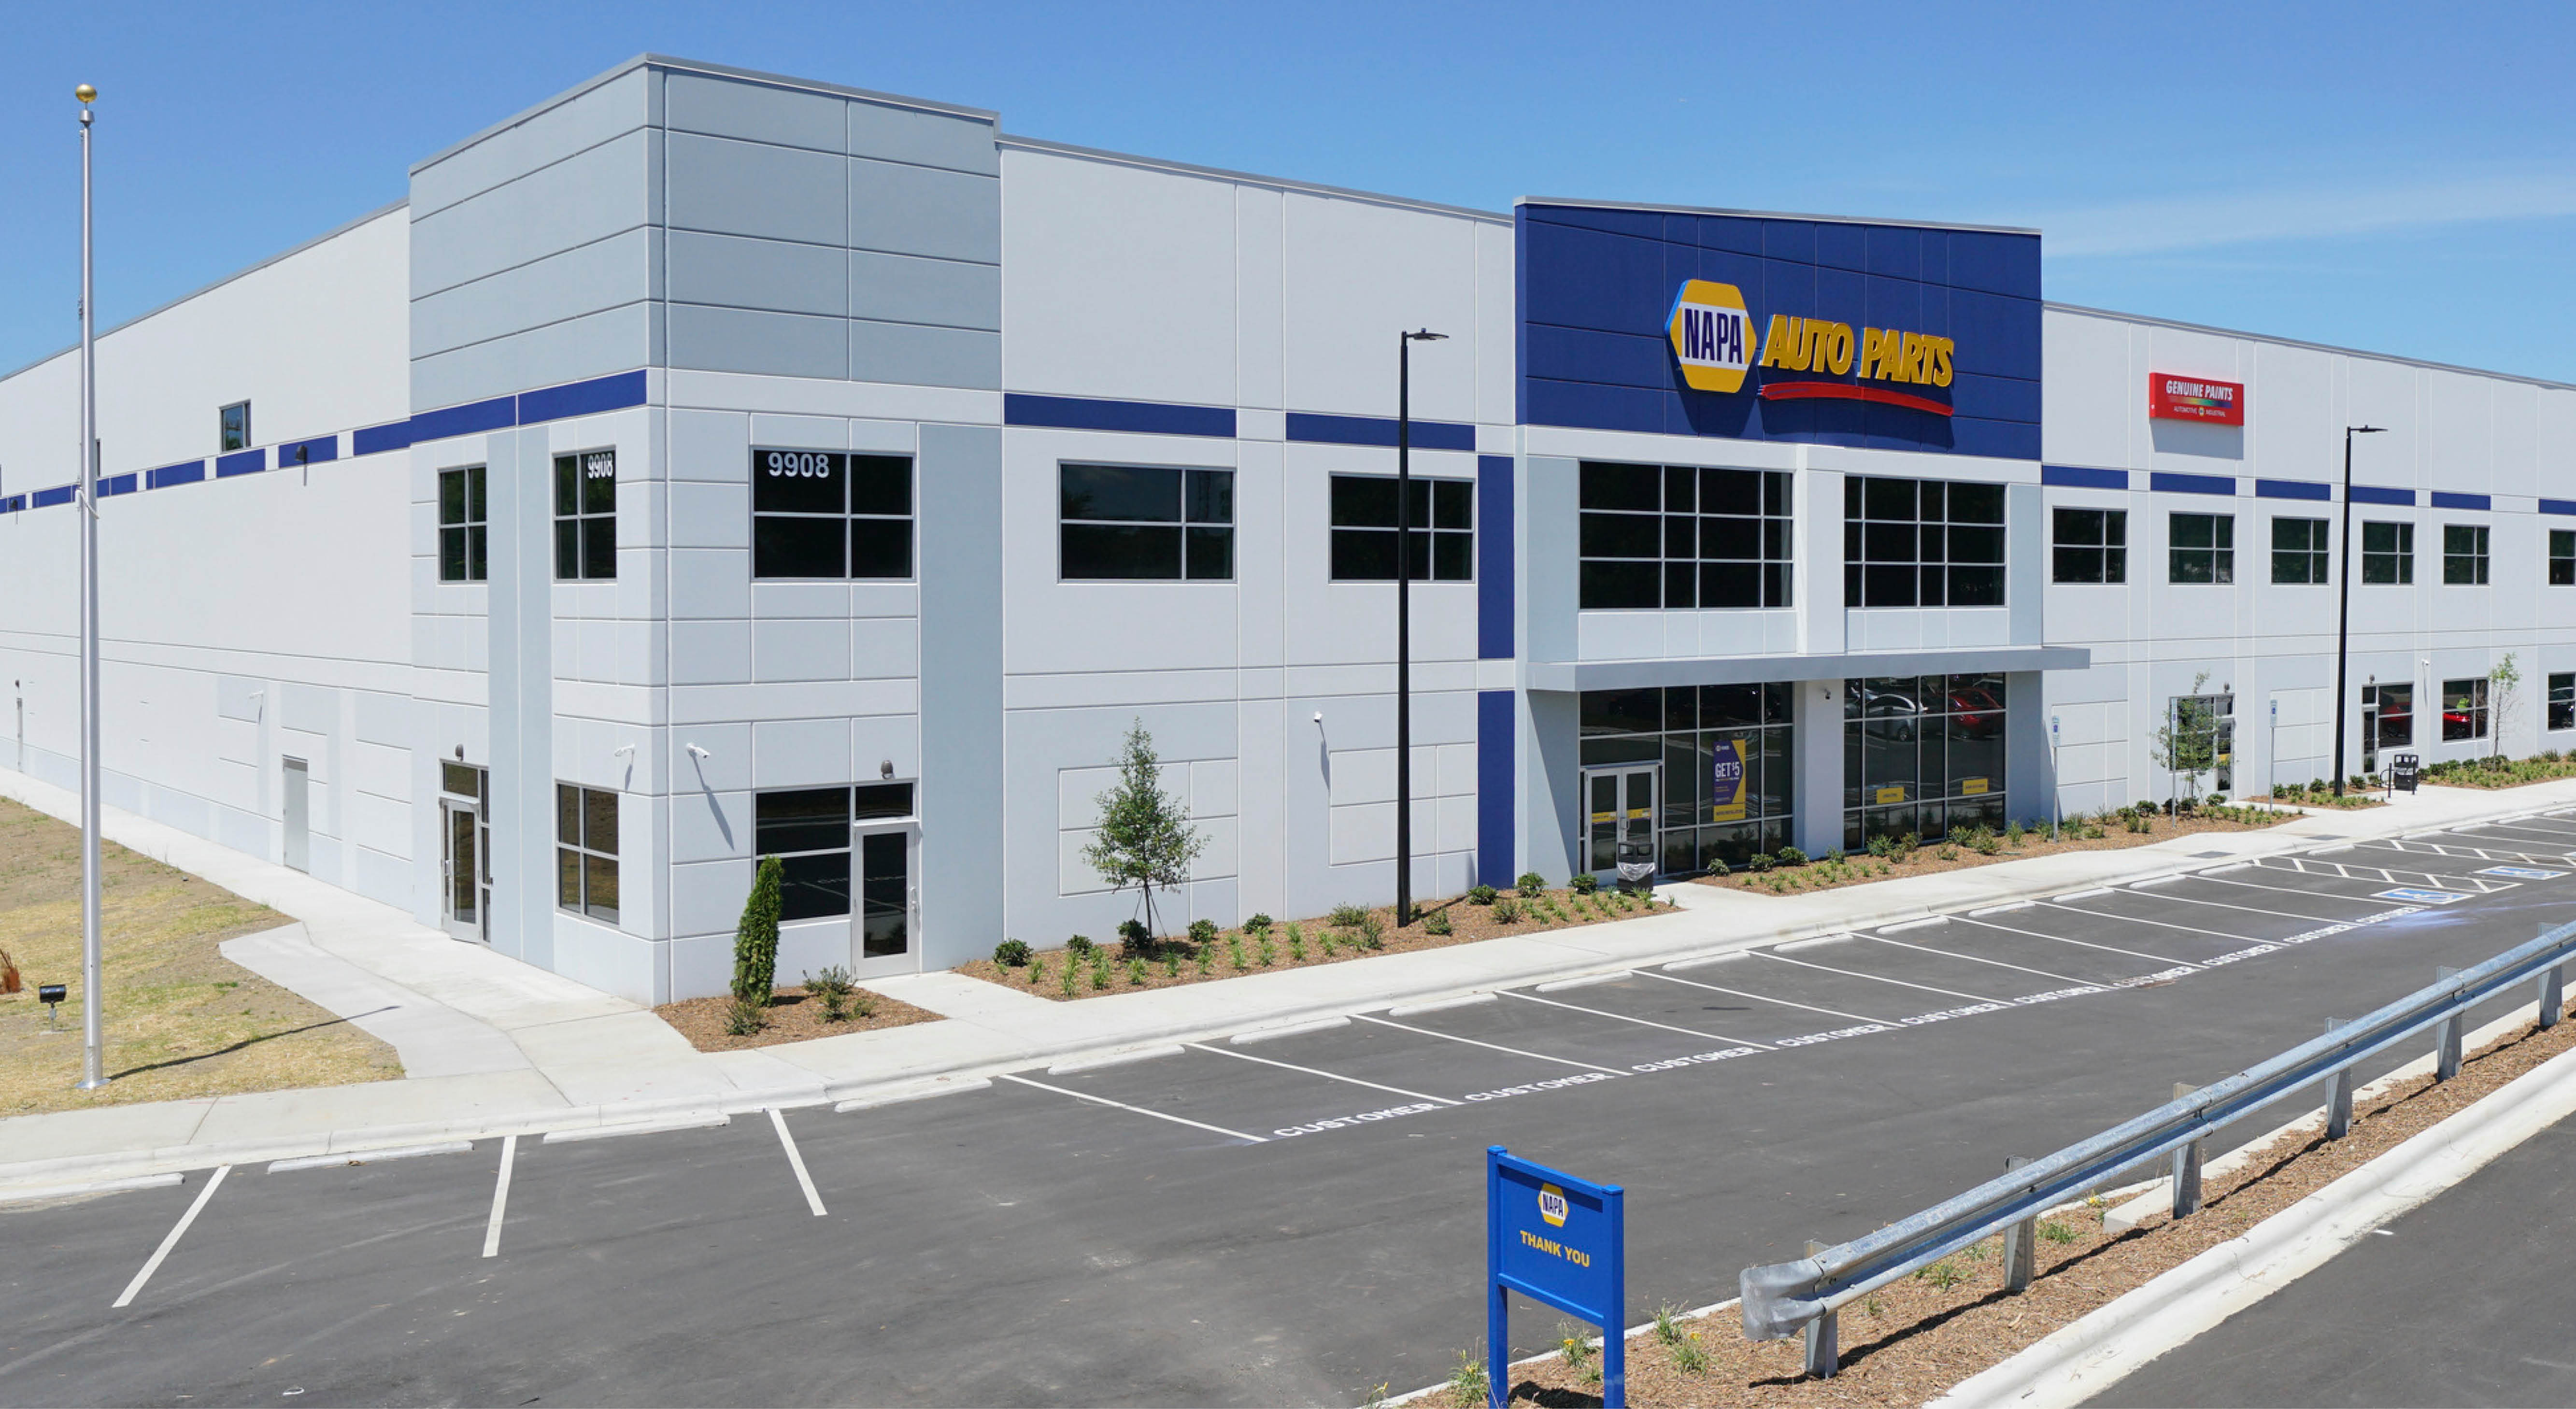 Napa Auto Parts industrial build to suit building